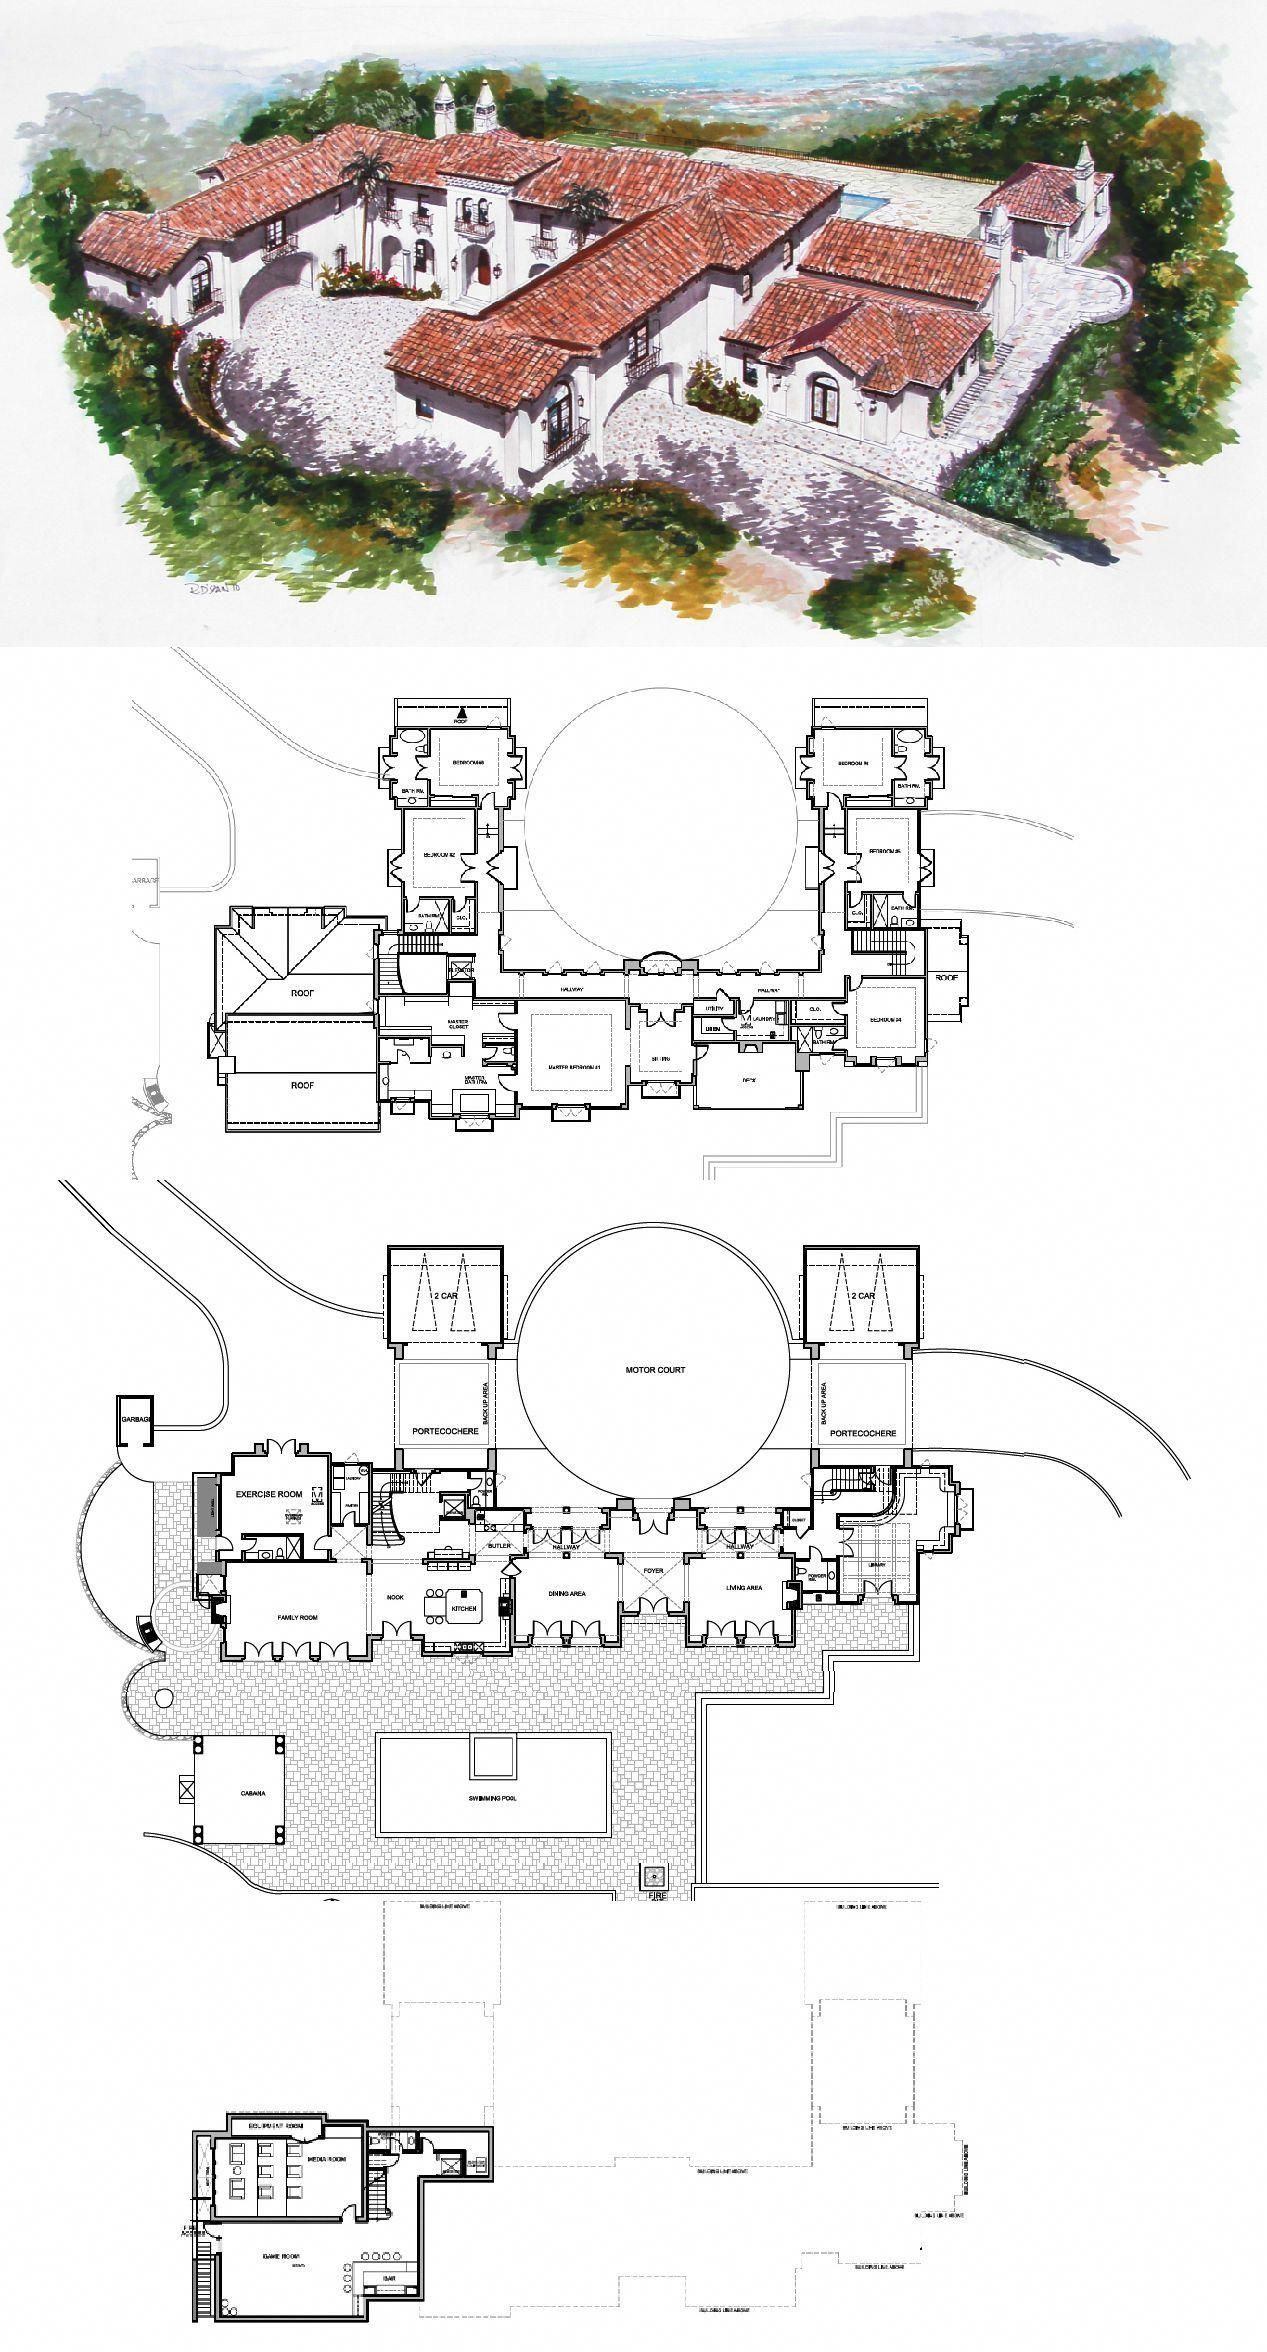 Spanish Style Estate To Be Built In Hillsborough Ca Spanishstylehomes Mansion Floor Plan Spanish Style Homes Courtyard House Plans